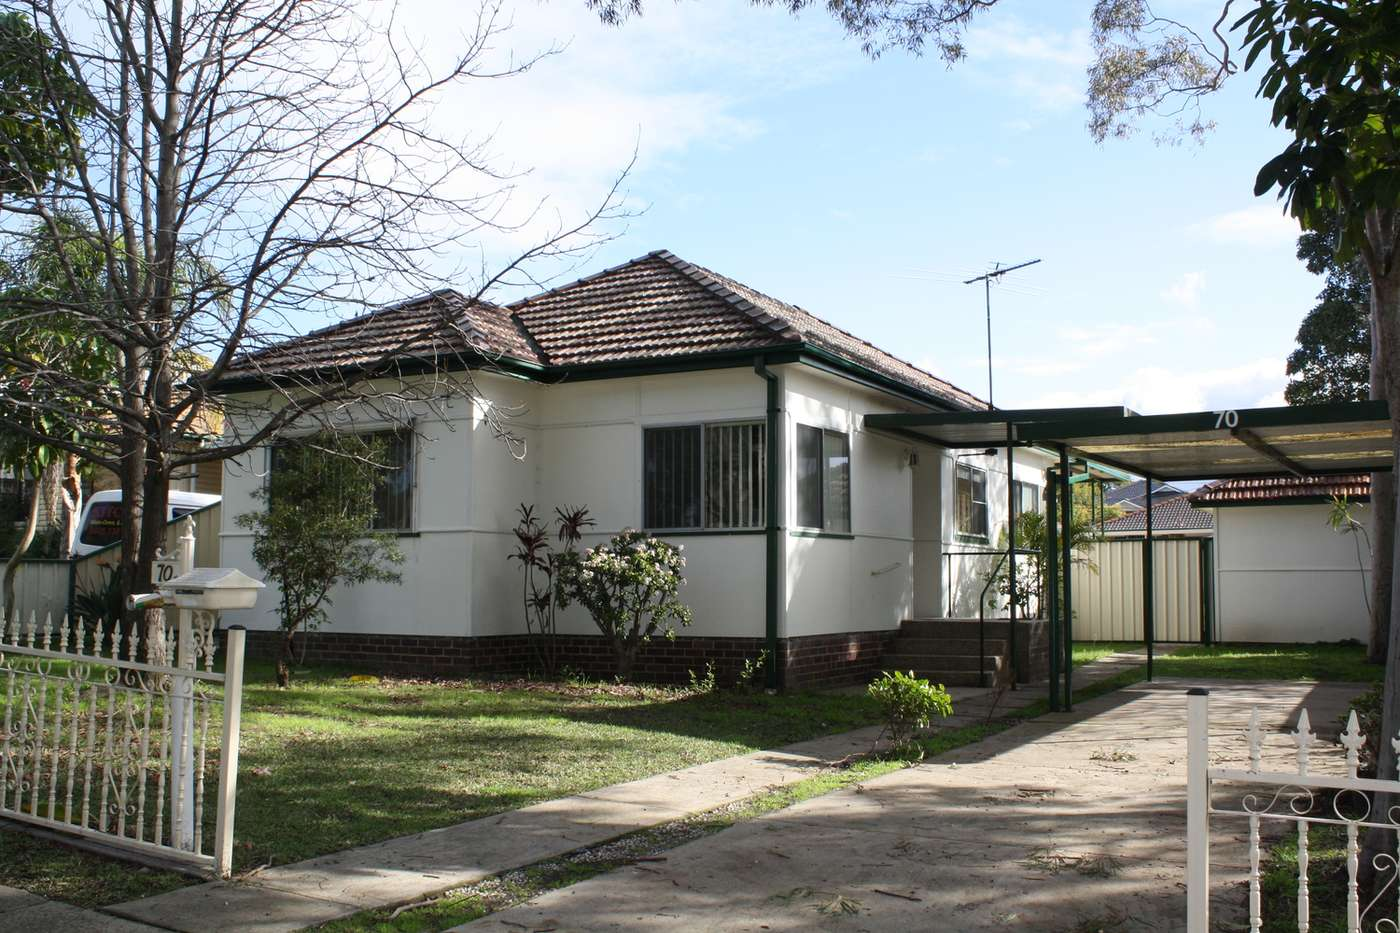 Main view of Homely house listing, 70 Antwerp Street, Bankstown, NSW 2200